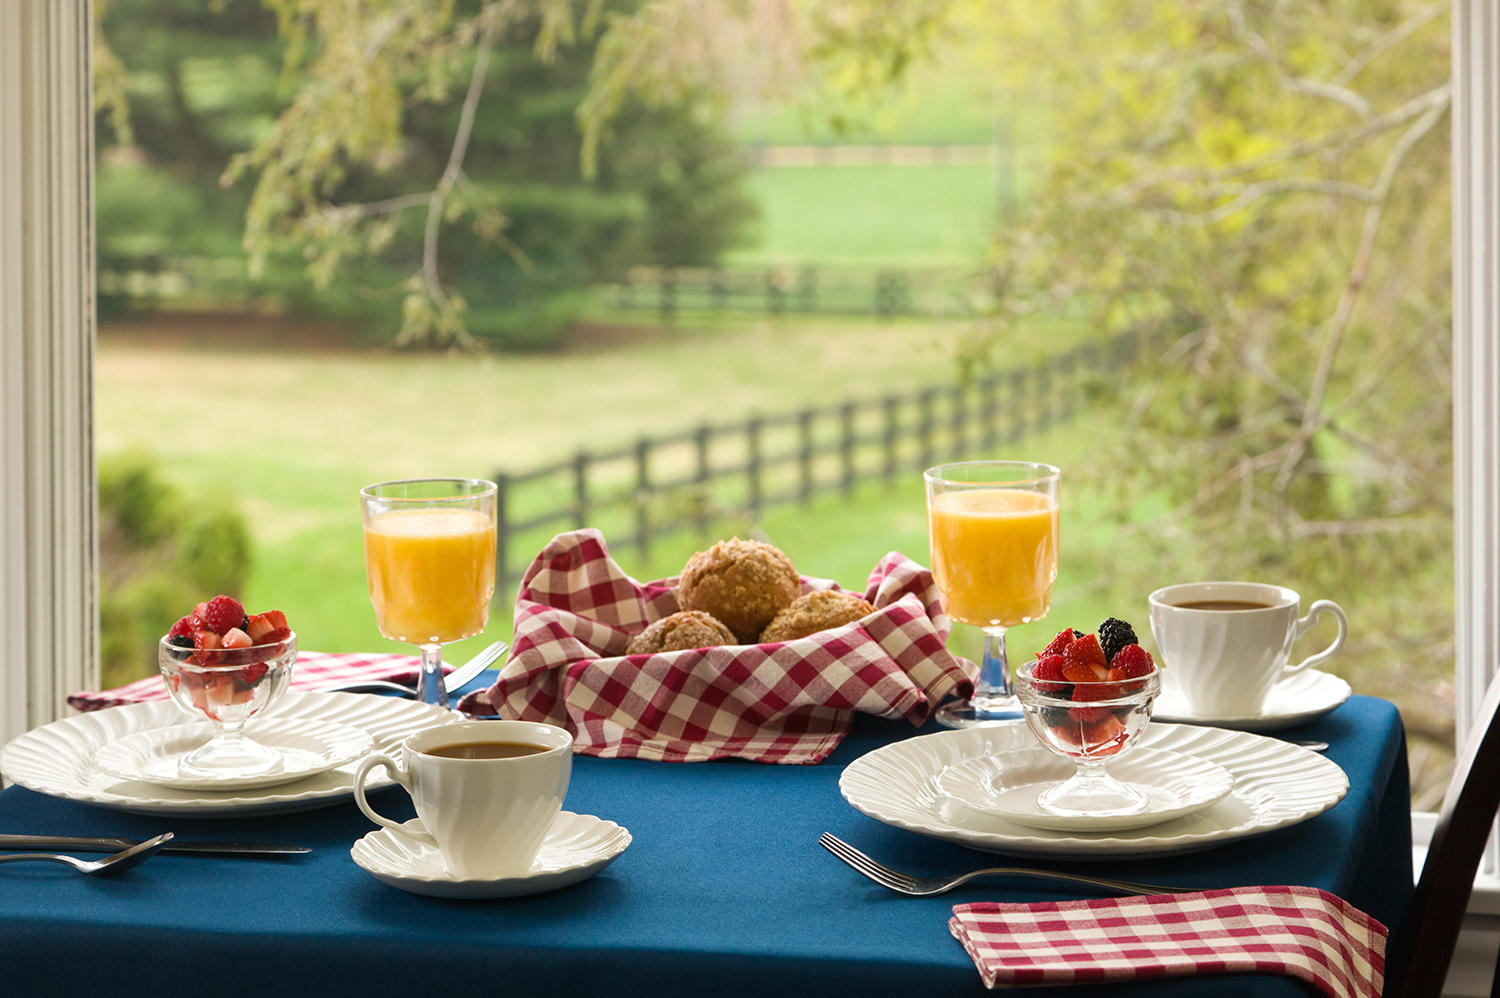 Inn at Whitewing Farm-Breakfast-